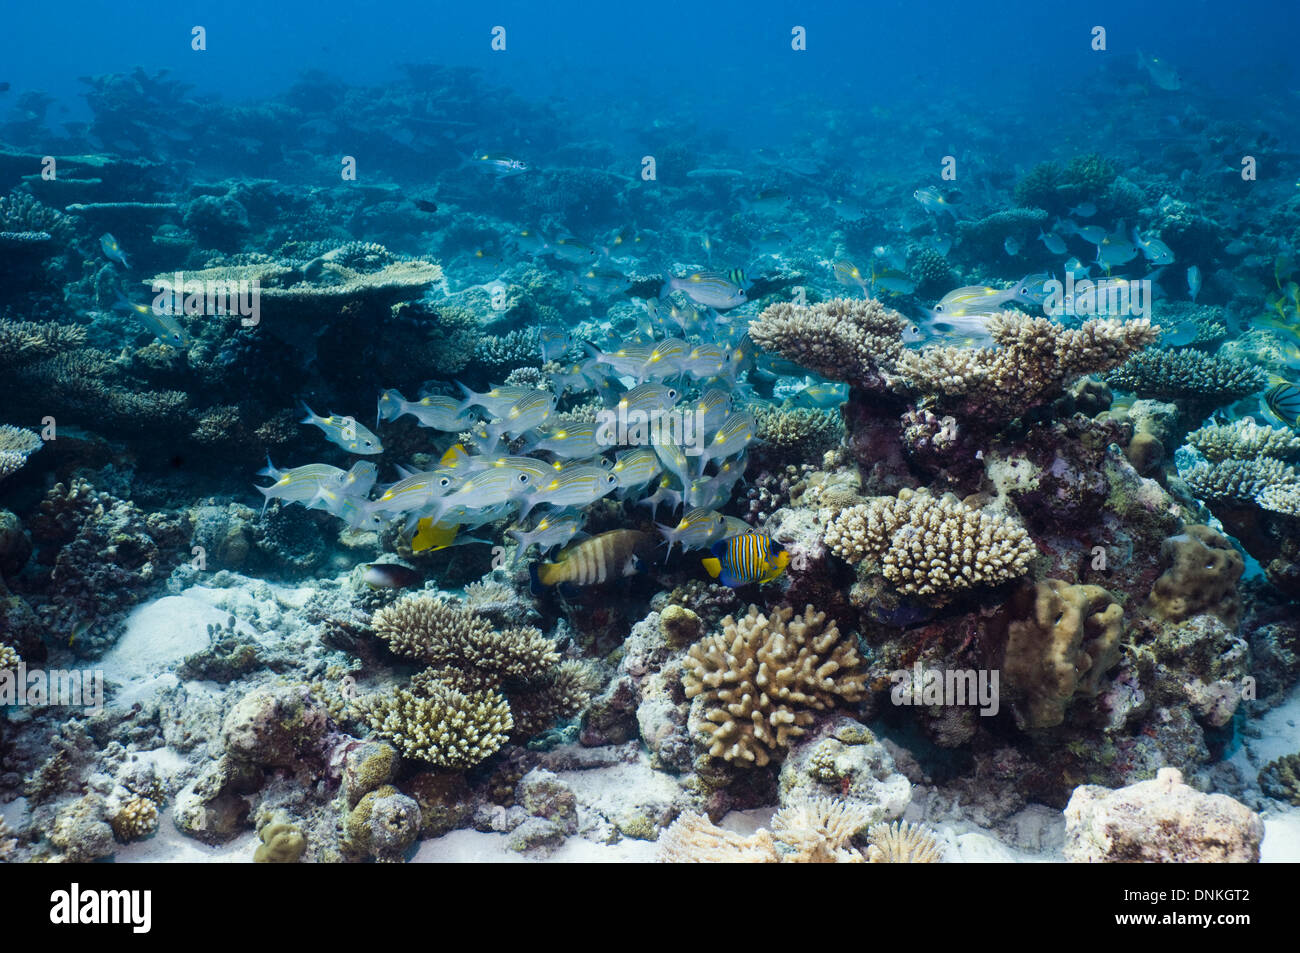 Coral reef with a small school of Yellowspot emperors (Gnathodentex aurolineatus). Maldives. - Stock Image